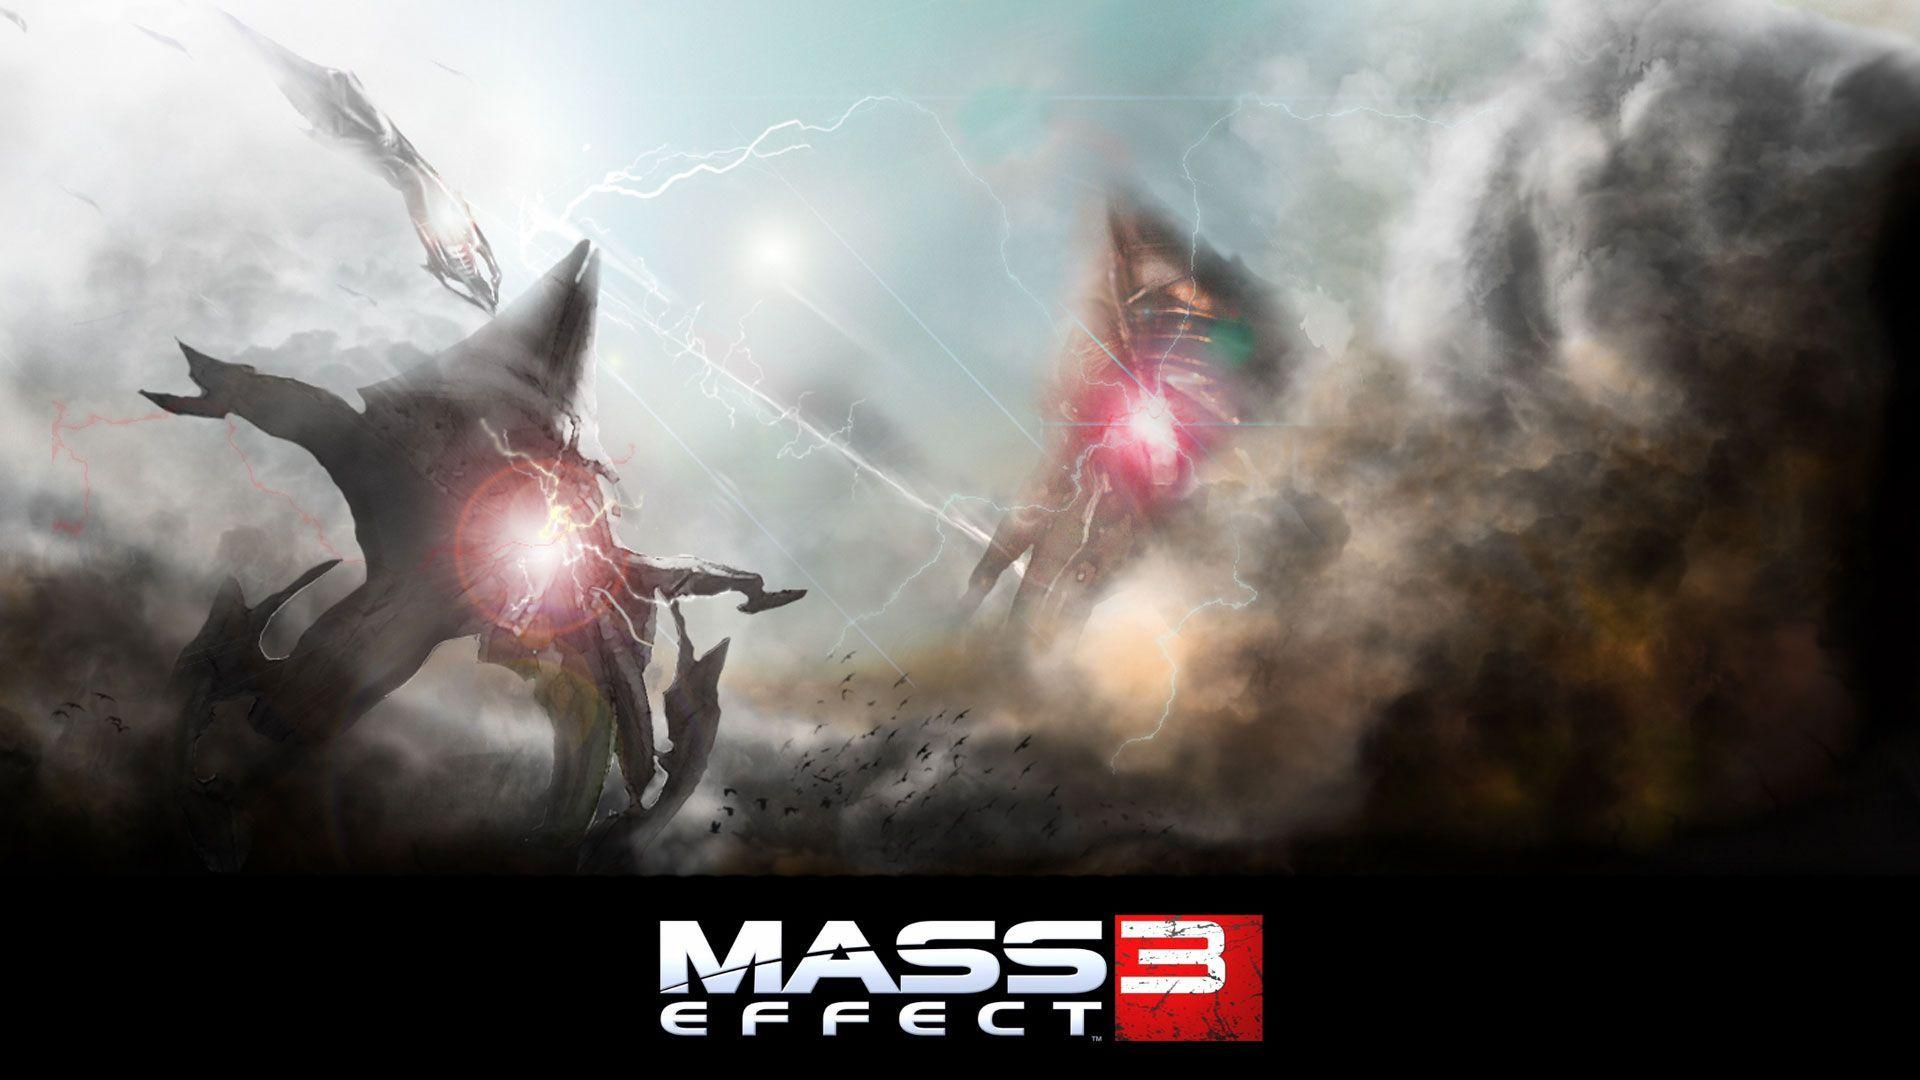 Mass Effect 3 Wallpapers in HD